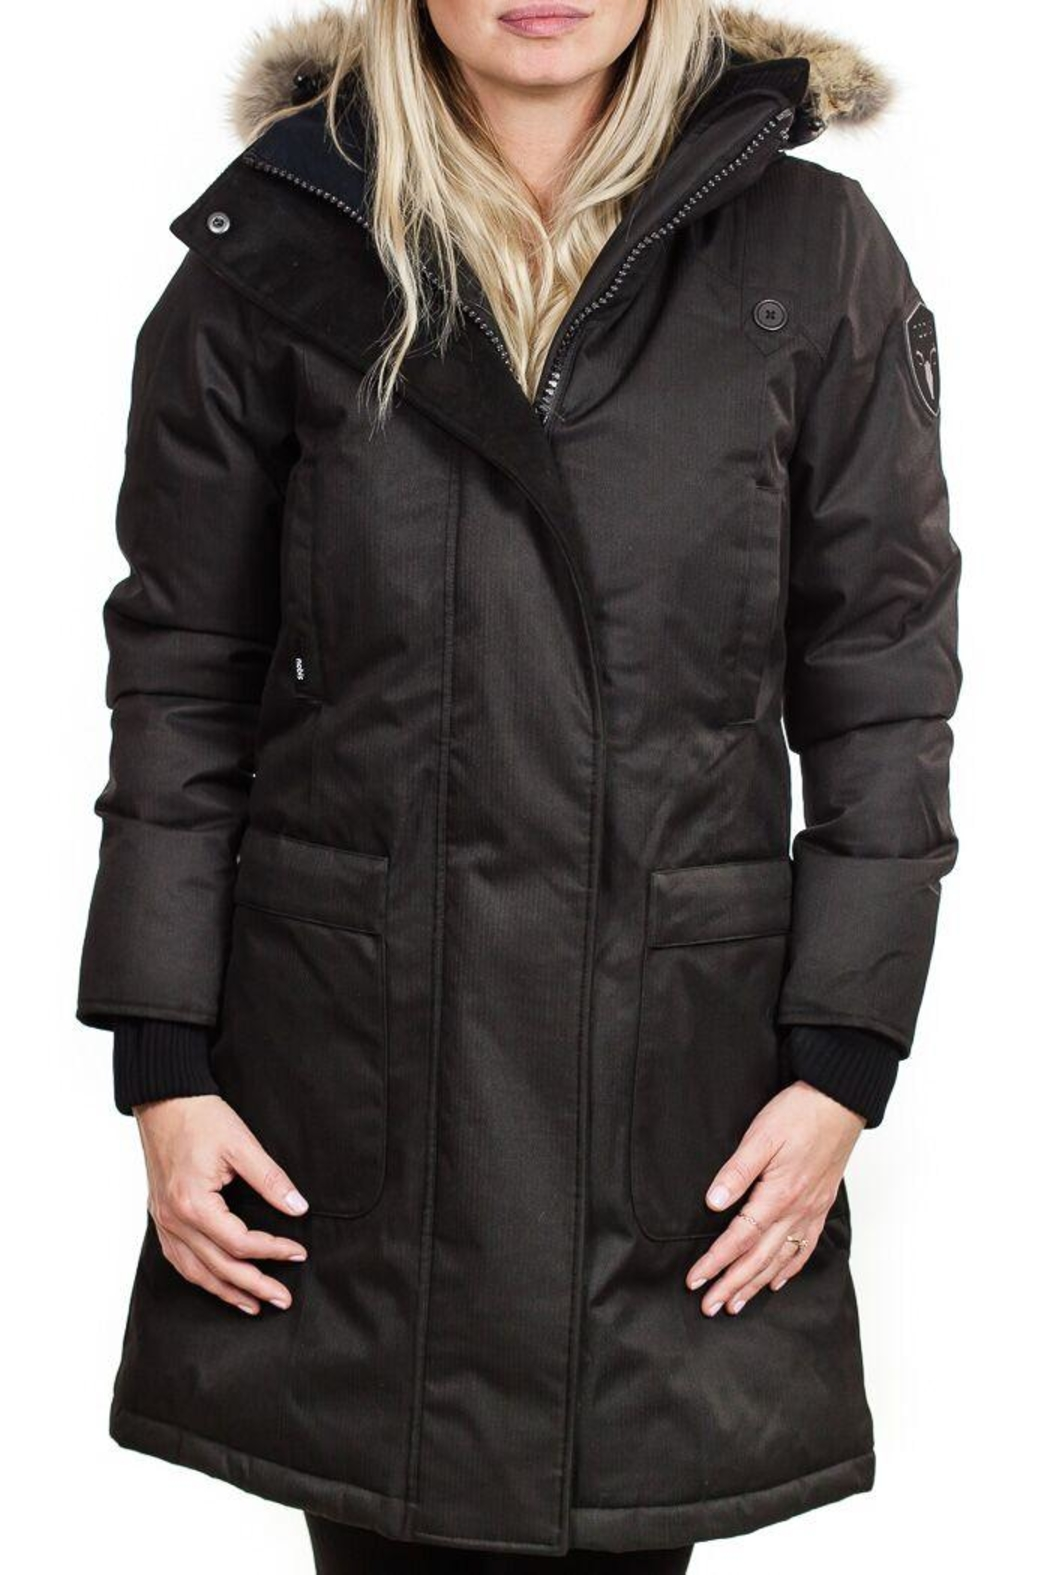 Nobis Merideth Ladies Parka from Canada by Swartz Fine Fashions ...